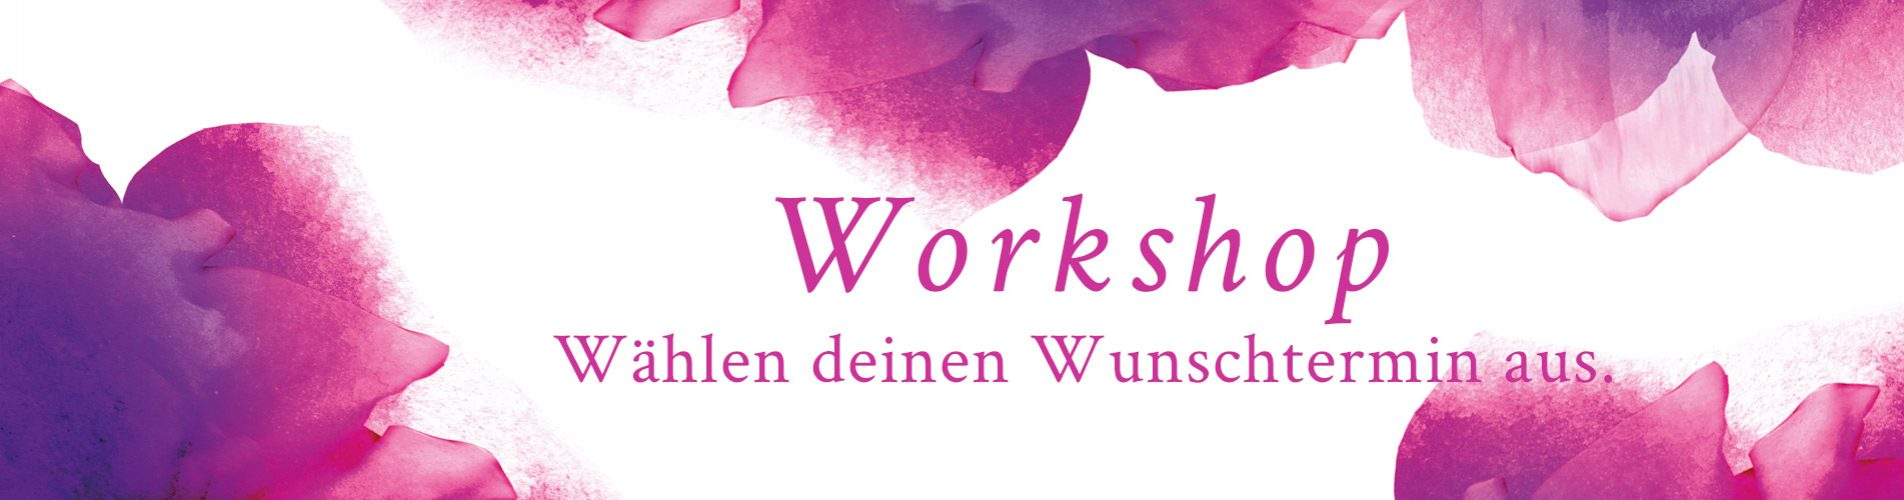 banner-carrucel-workshop